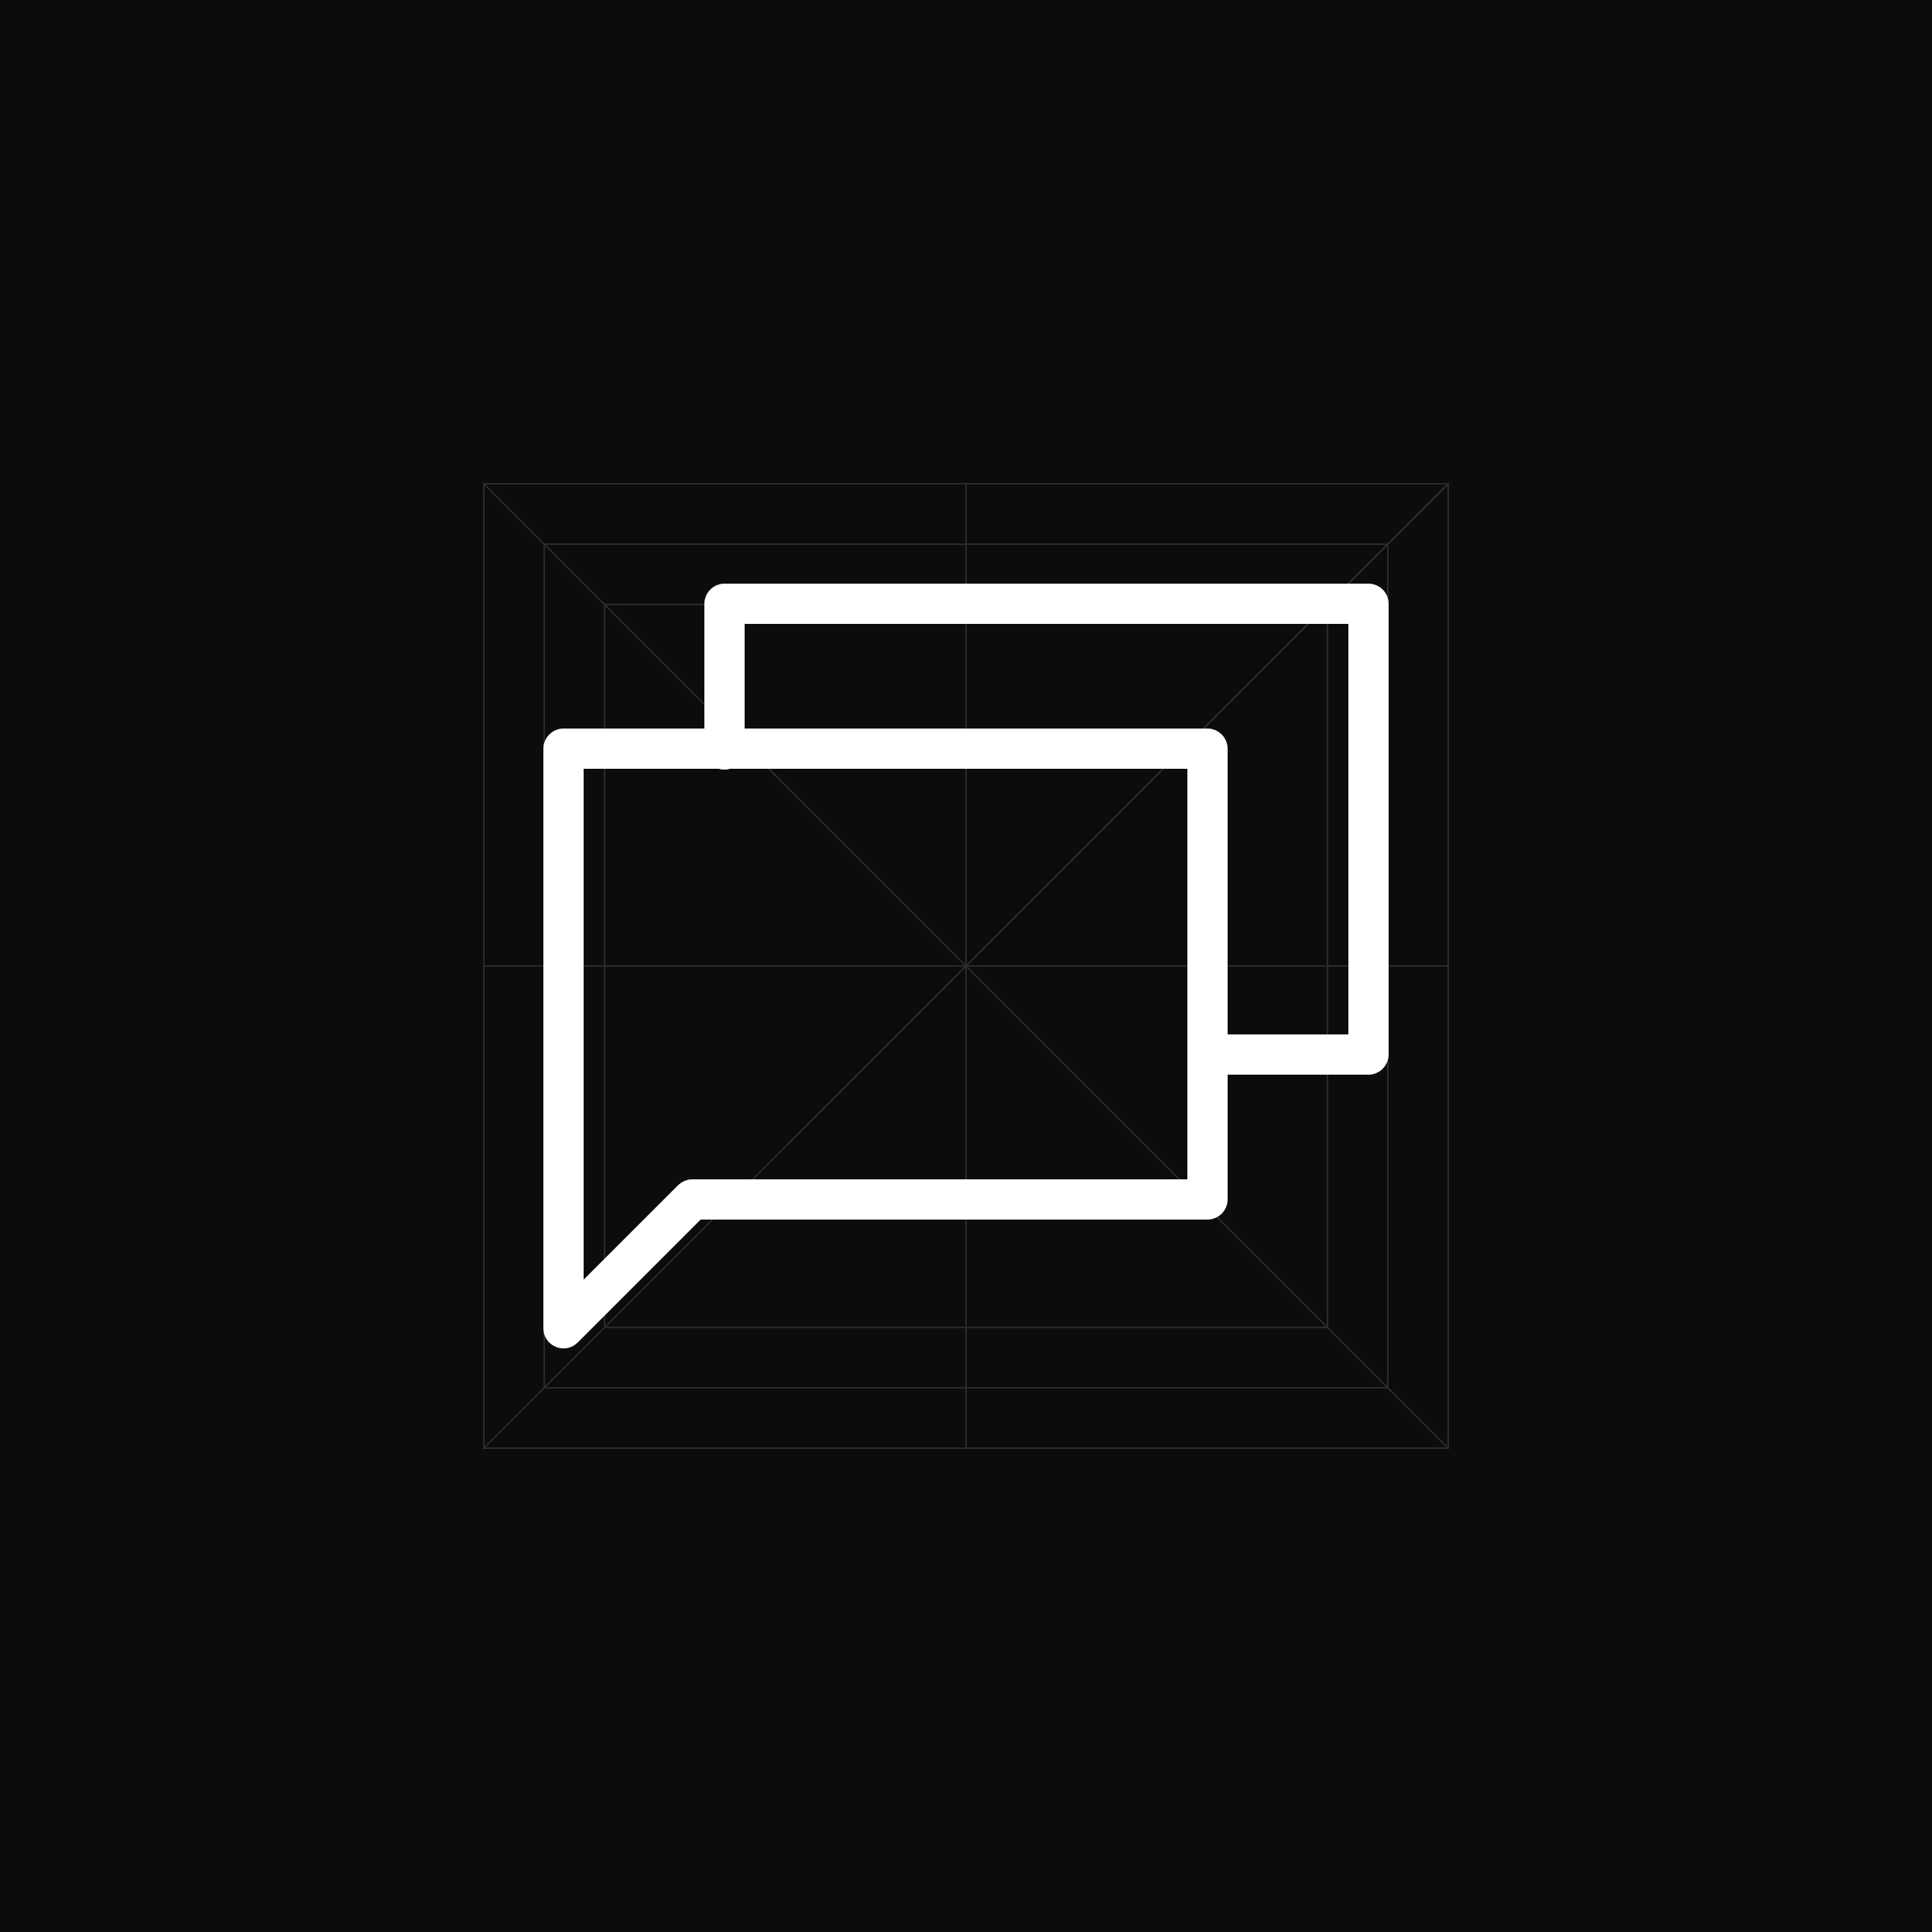 vzy-icon-chat-2-outline